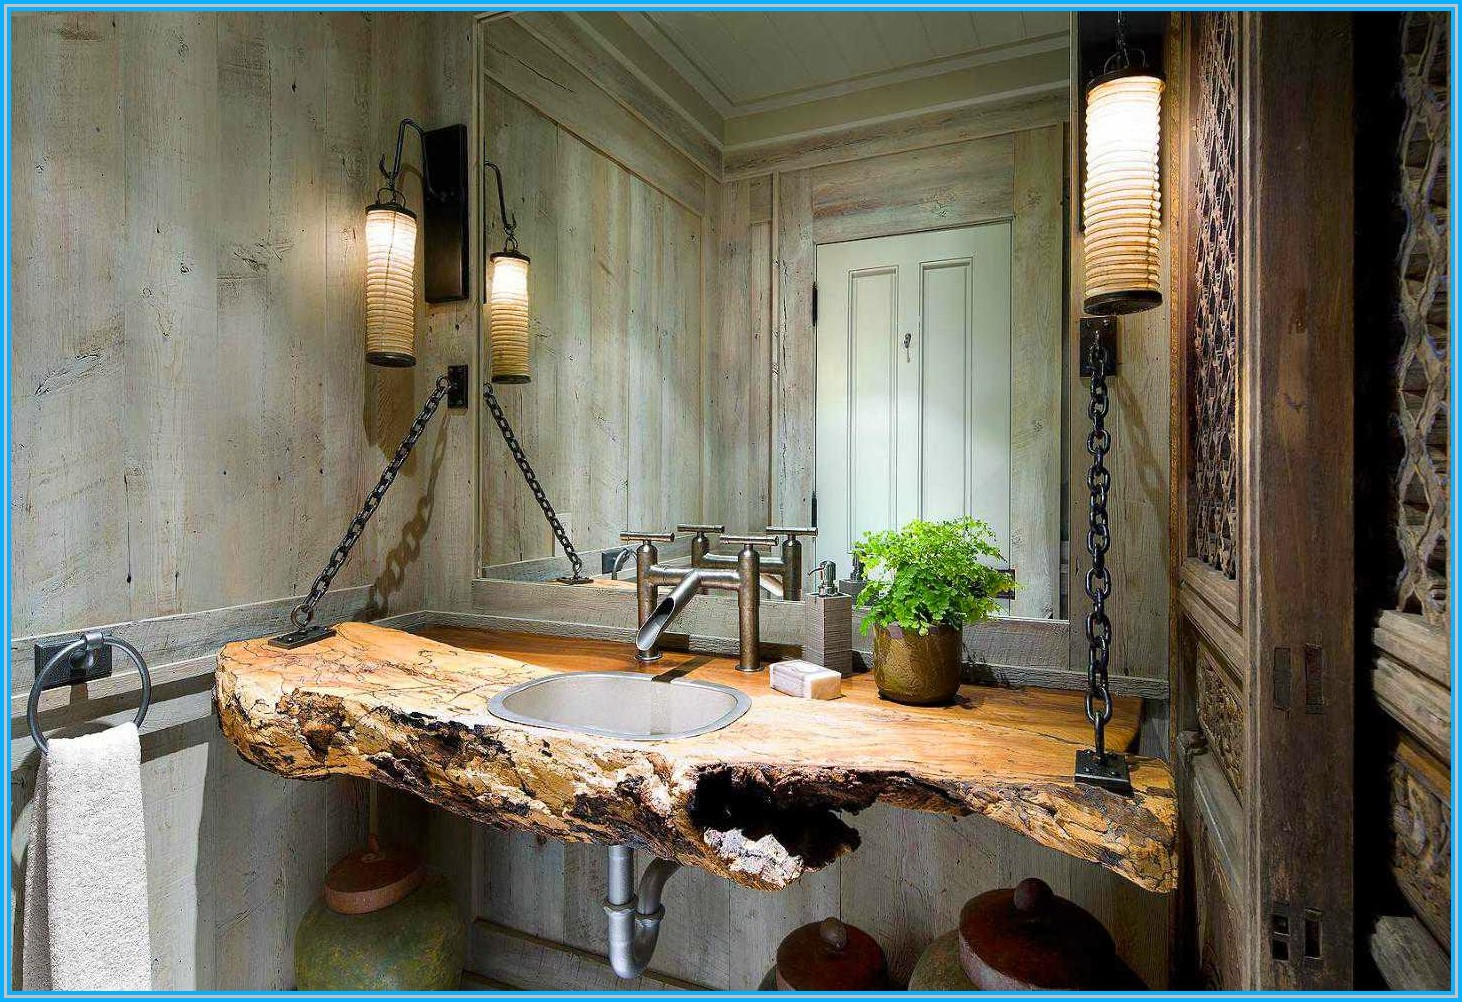 35 Exceptional Rustic Bathroom Designs Filled With Coziness And Warmth Architecture Design